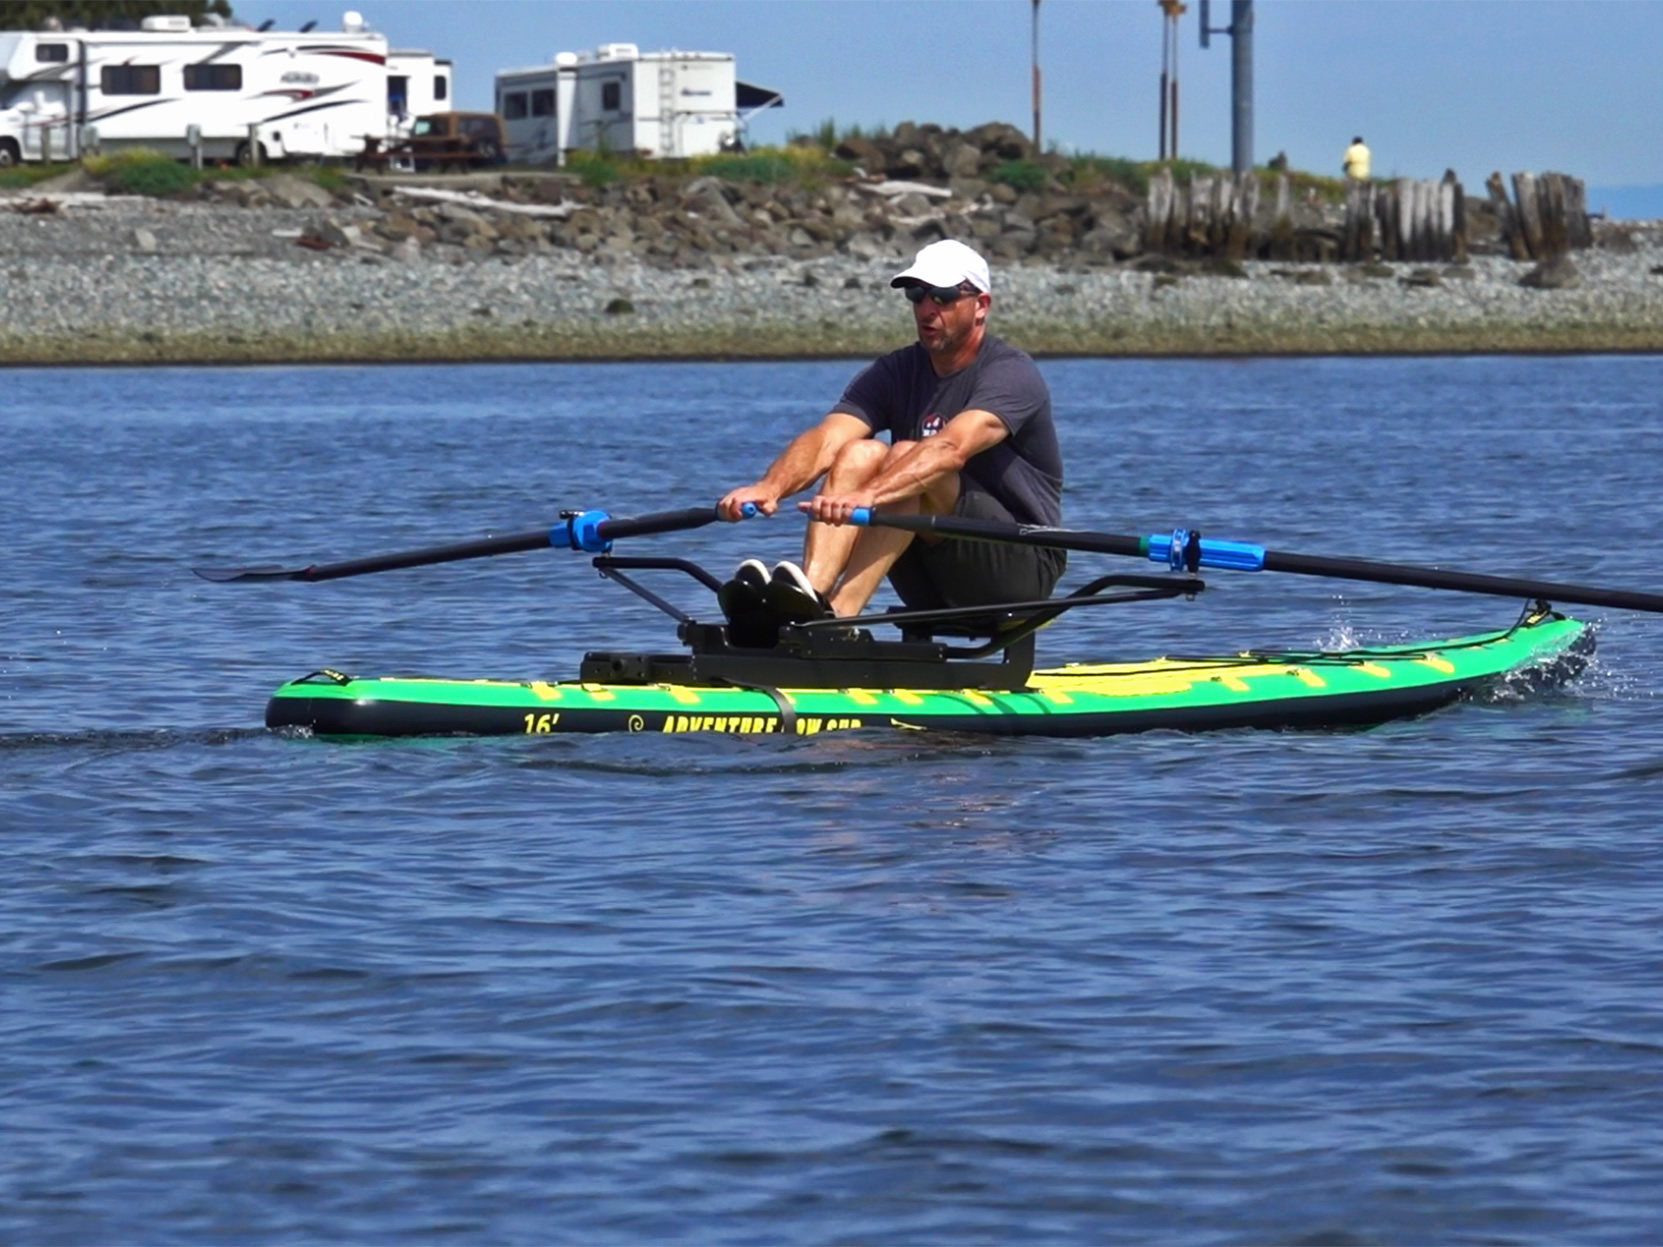 oar-board-stand-up-paddle-board-rower-whitehall-rowing-and-sail-Peter-ADV-16-SUP-Trailer-Park